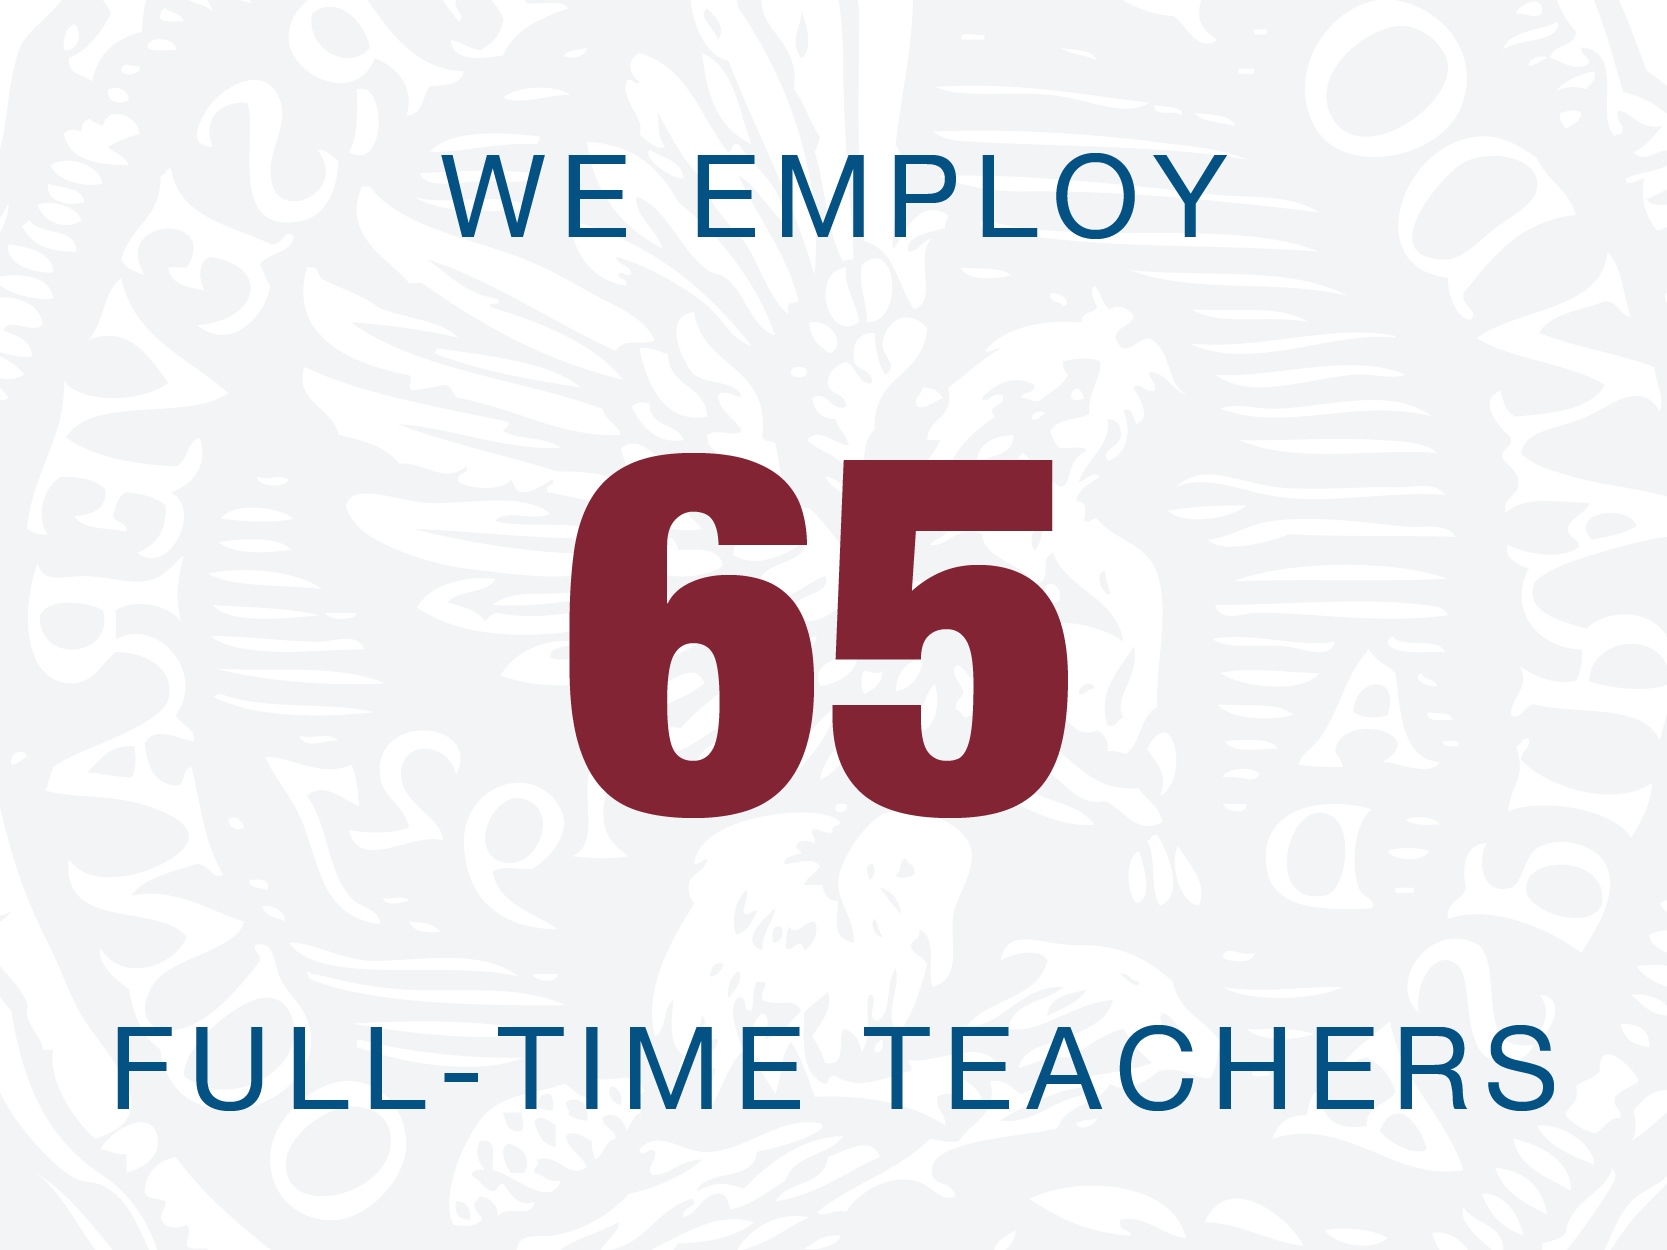 65 teachers webgraphic